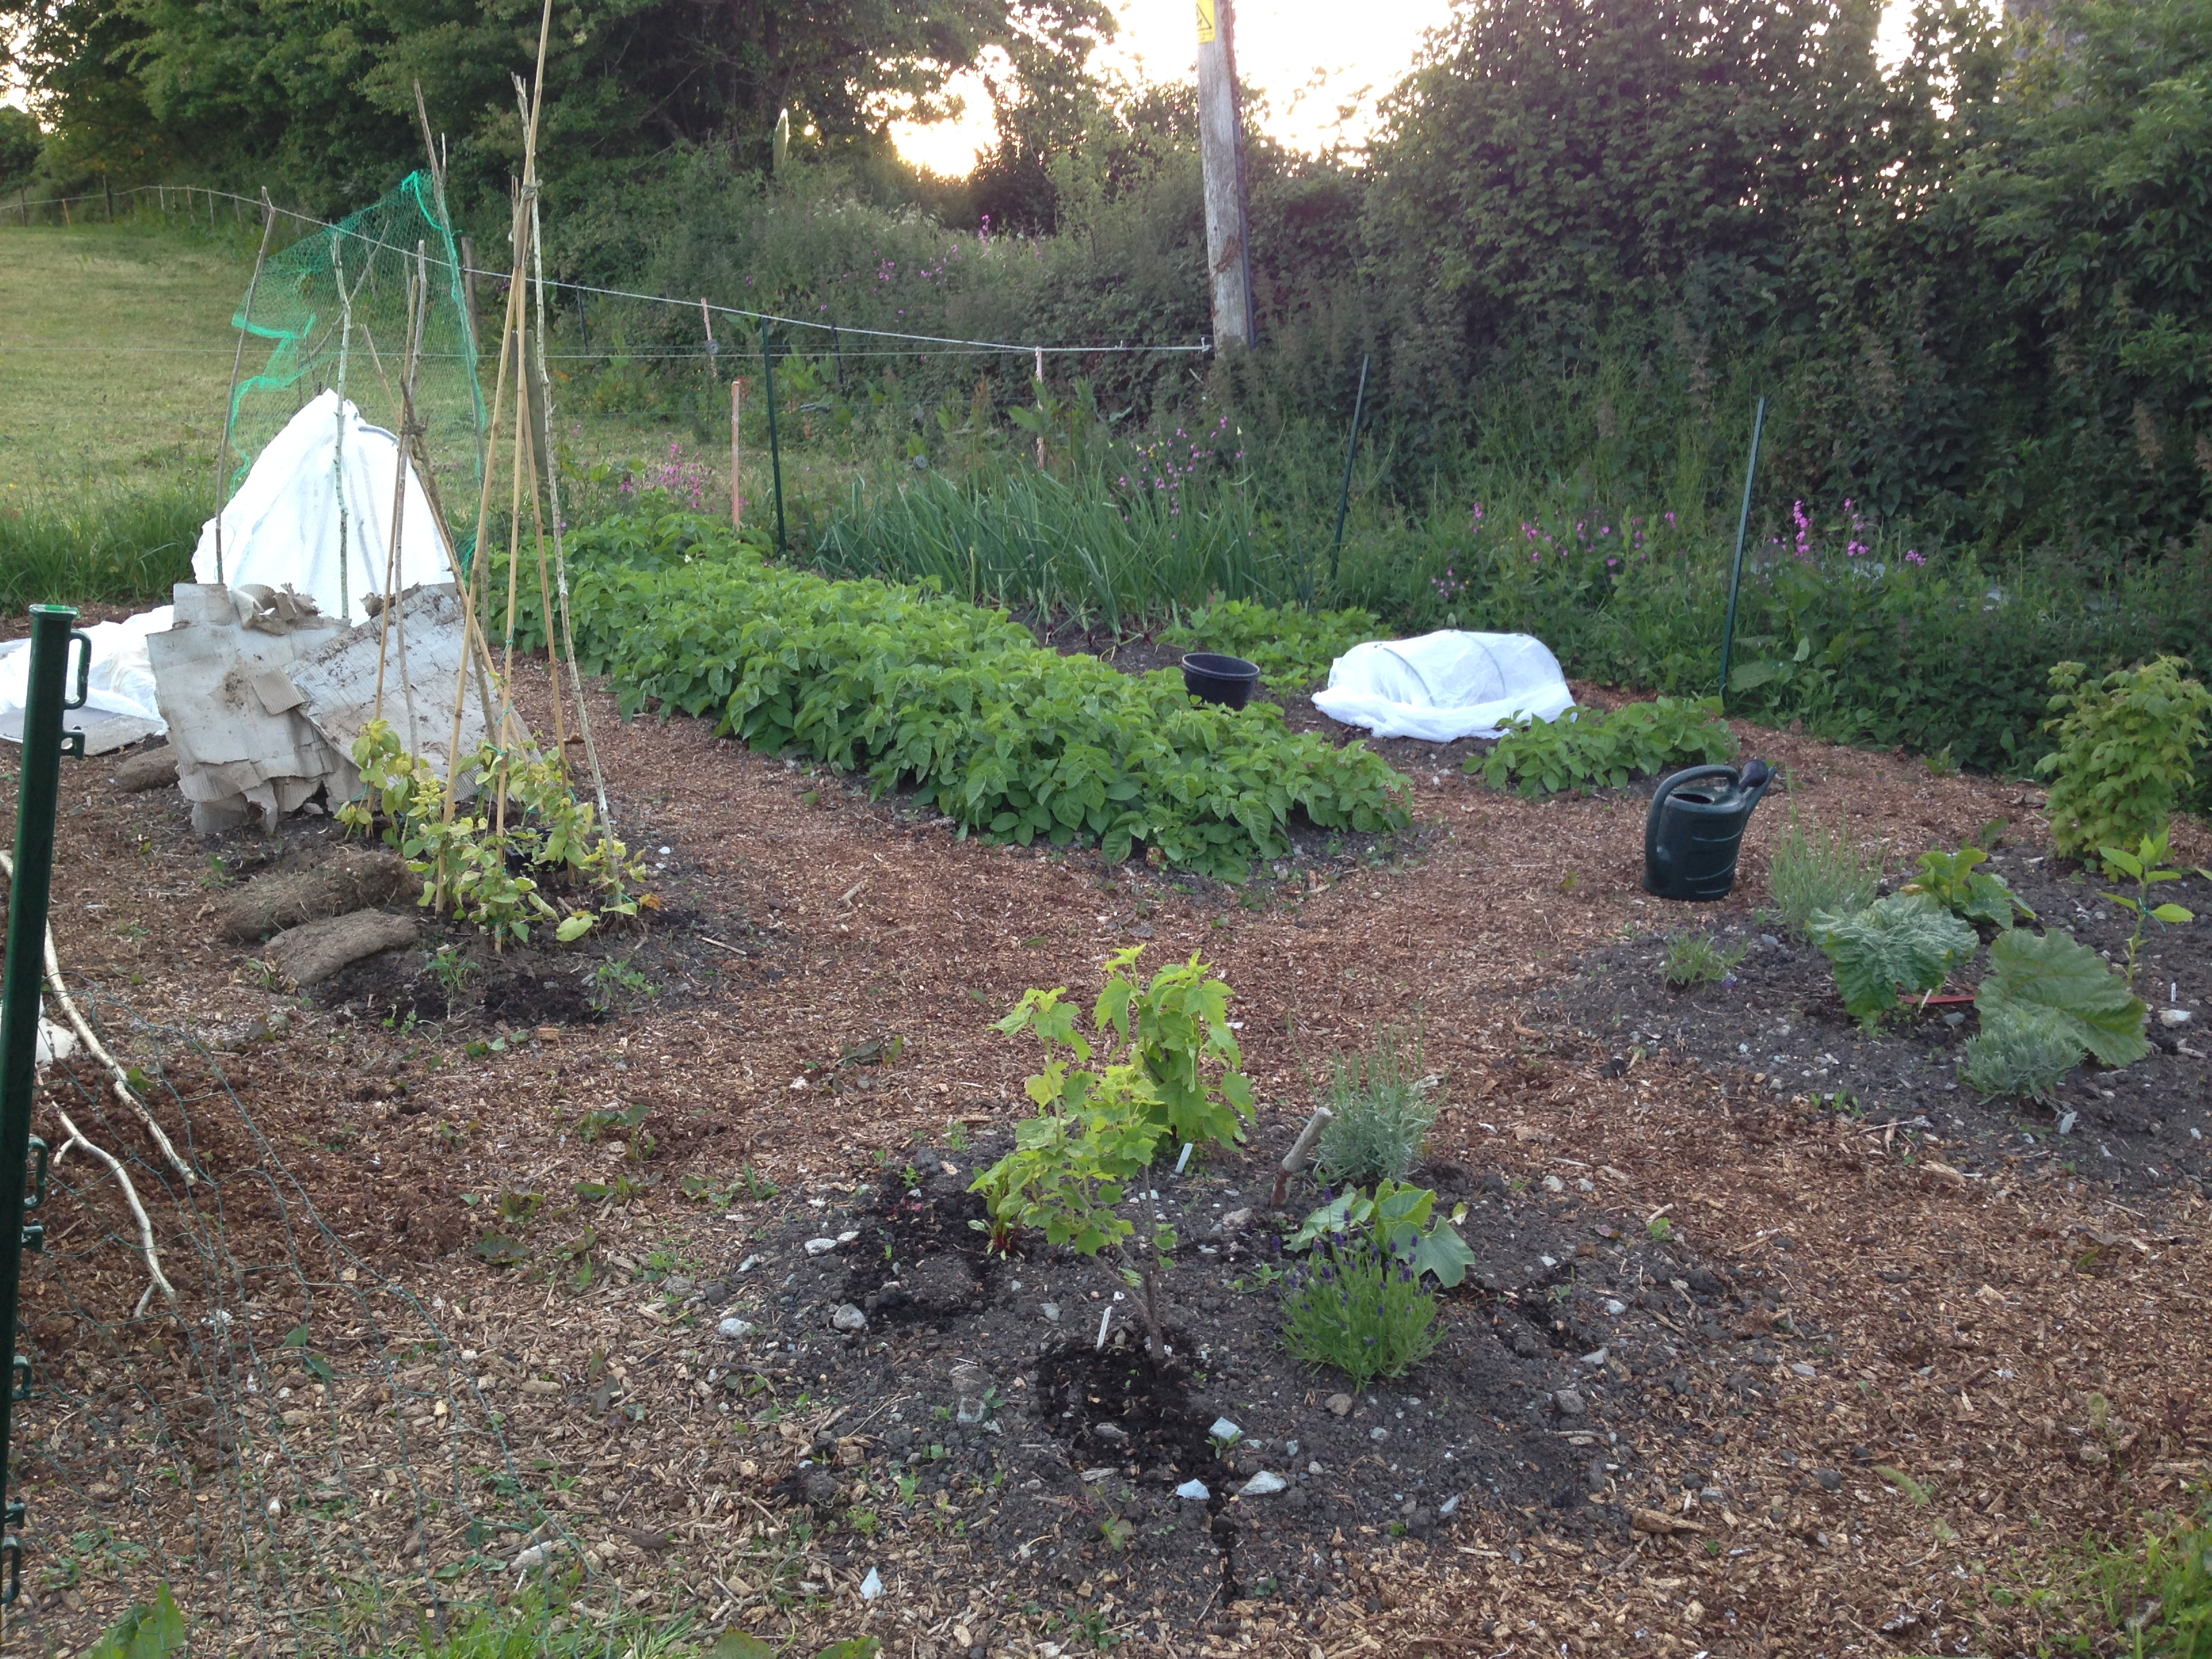 A quick visit to the allotment